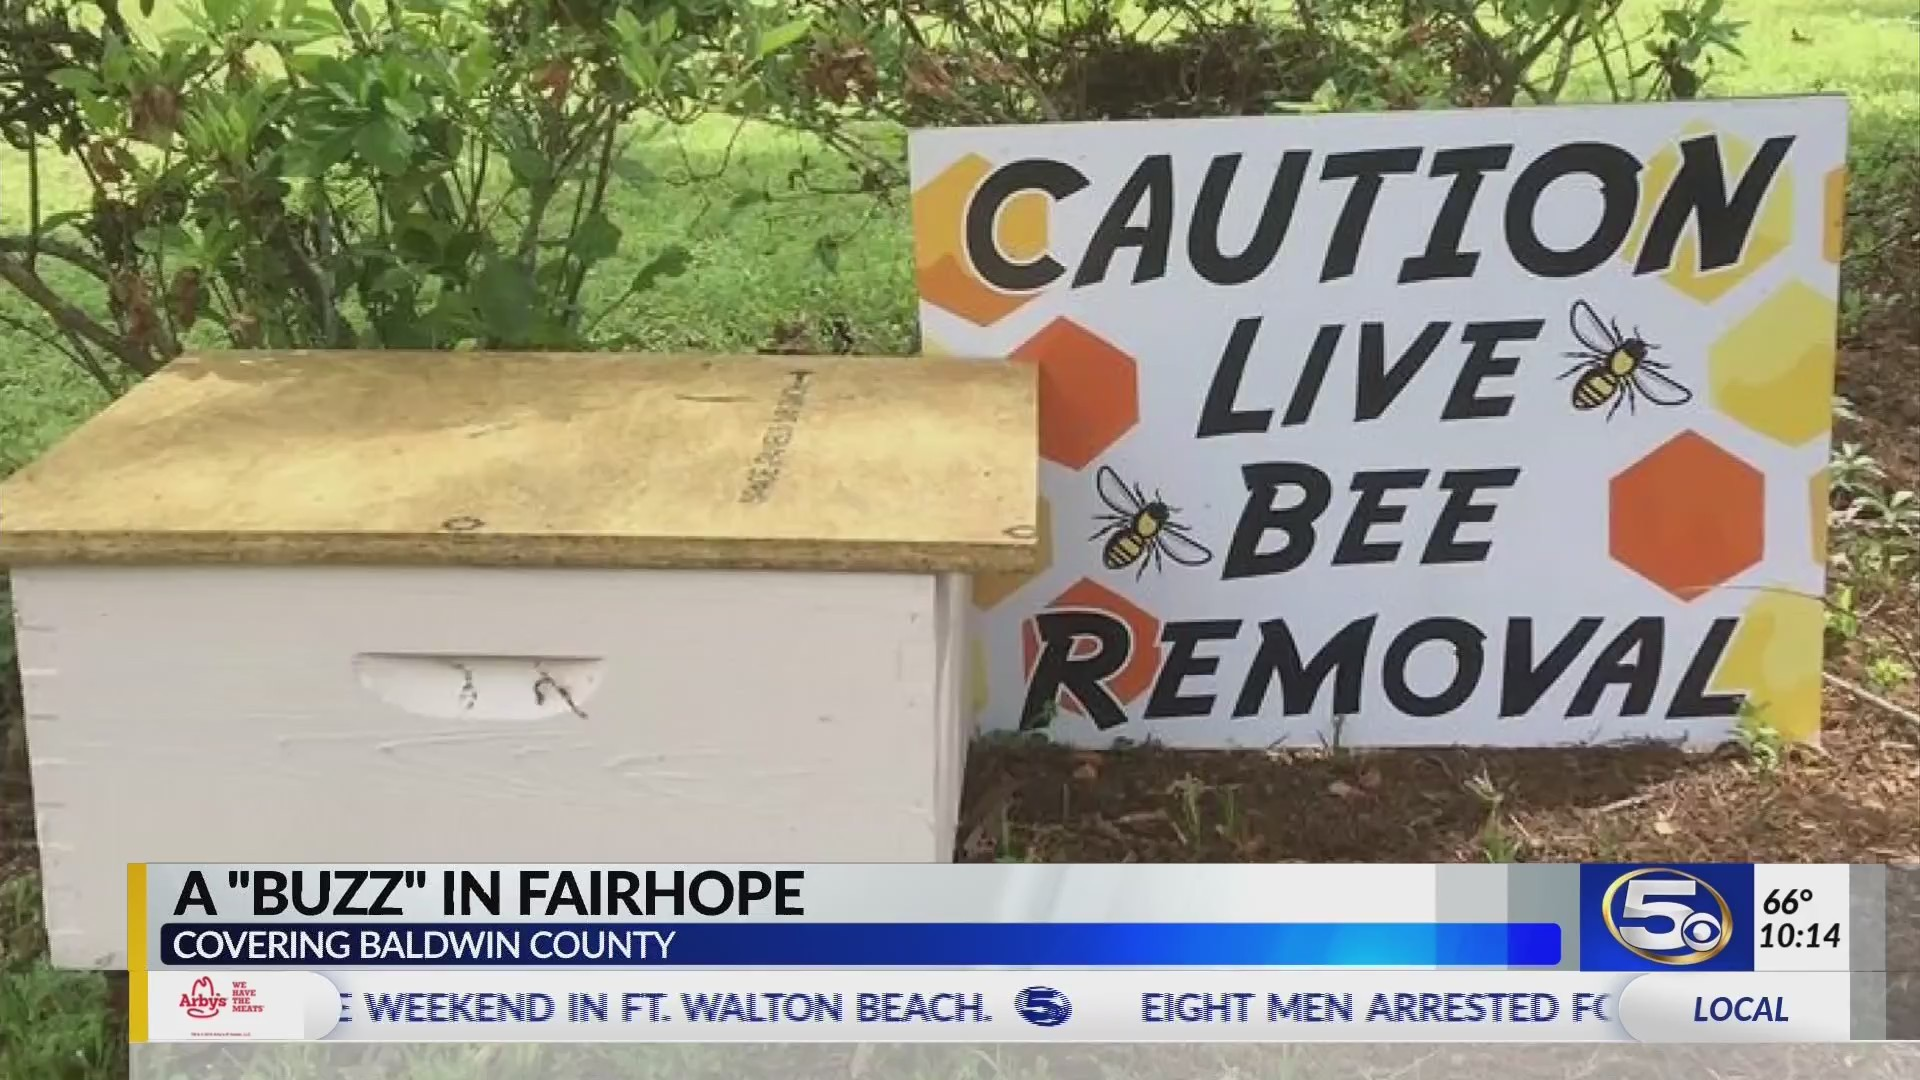 """VIDEO: Woman finds sign saying """"Caution, Live Bee Removal"""" in front yard with no explanation"""